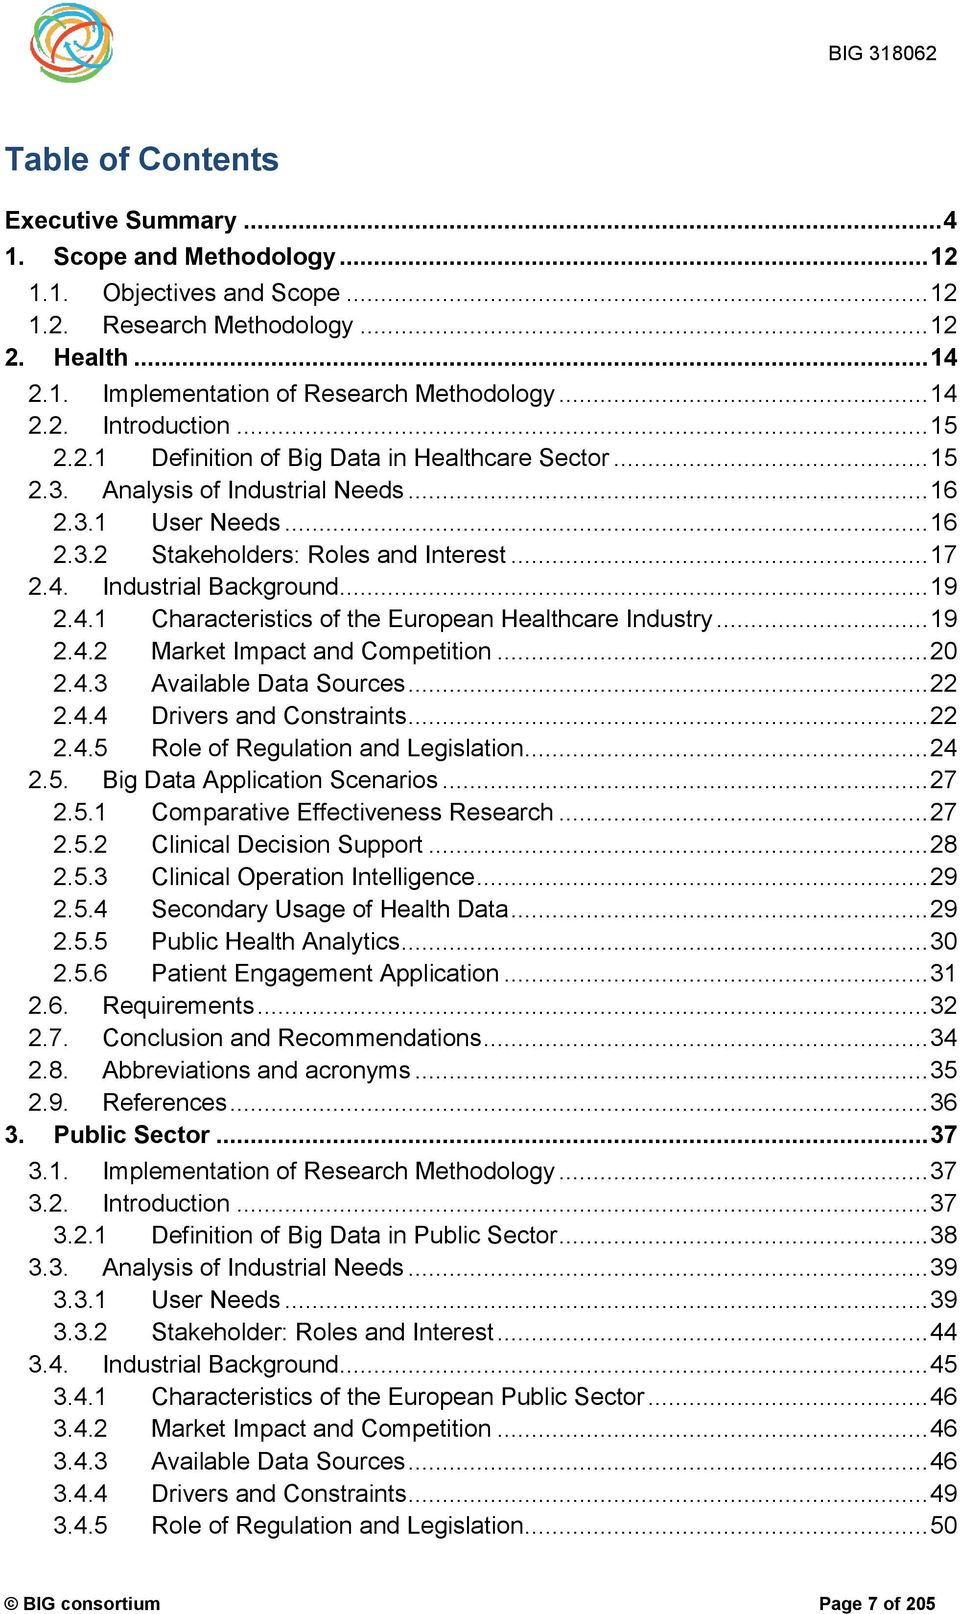 .. 19 2.4.1 Characteristics of the European Healthcare Industry... 19 2.4.2 Market Impact and Competition... 20 2.4.3 Available Data Sources... 22 2.4.4 Drivers and Constraints... 22 2.4.5 Role of Regulation and Legislation.